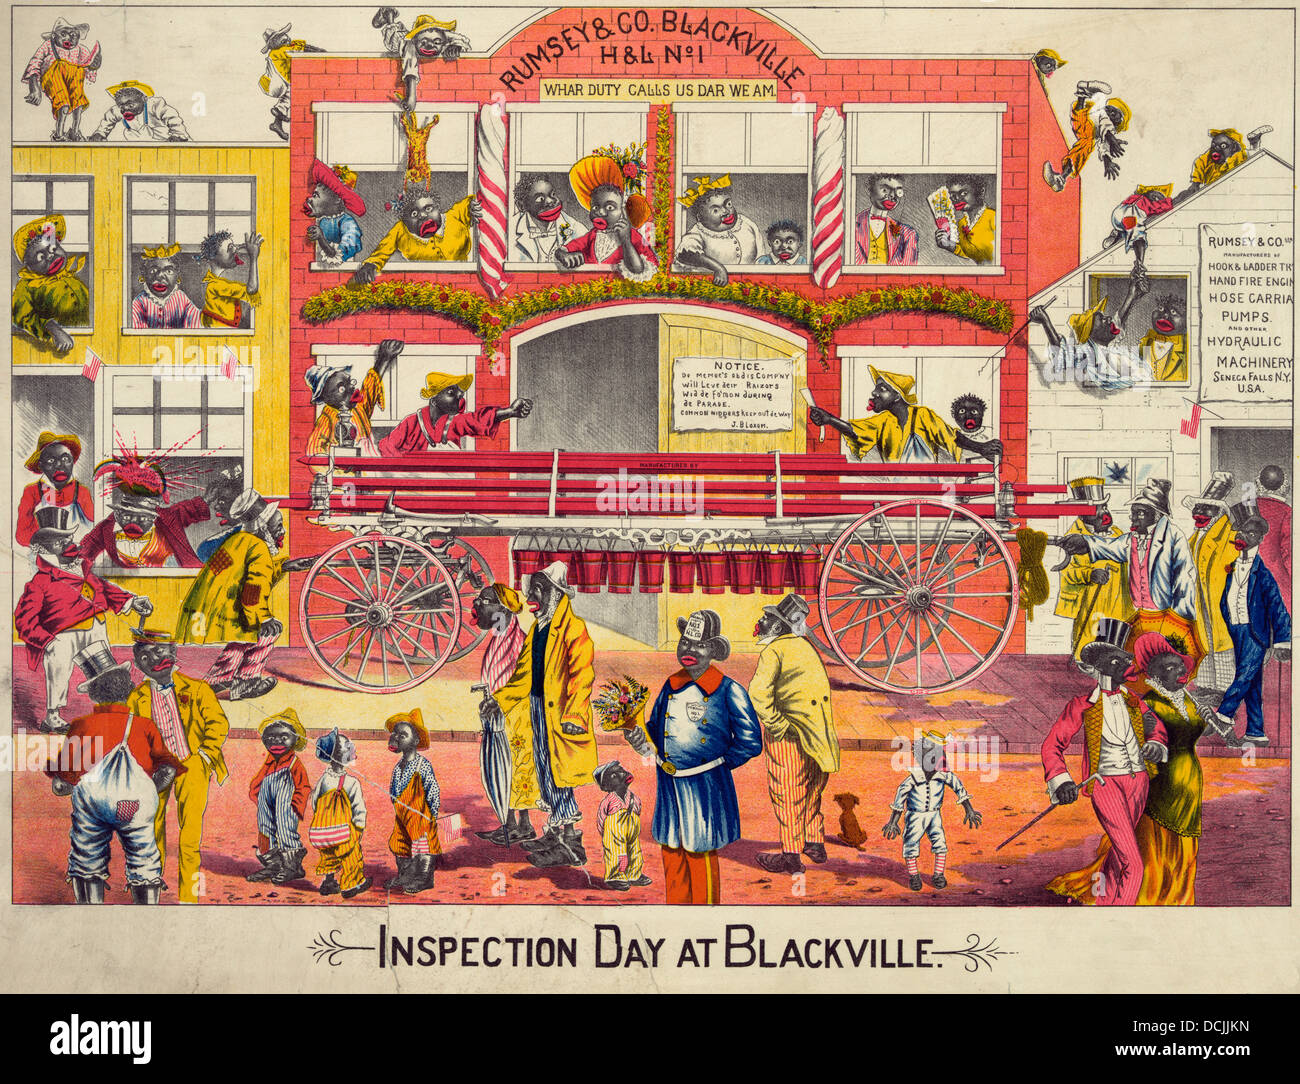 Inspection day at Blackville - Satirical look at African Americans, circa 1887 - Stock Image